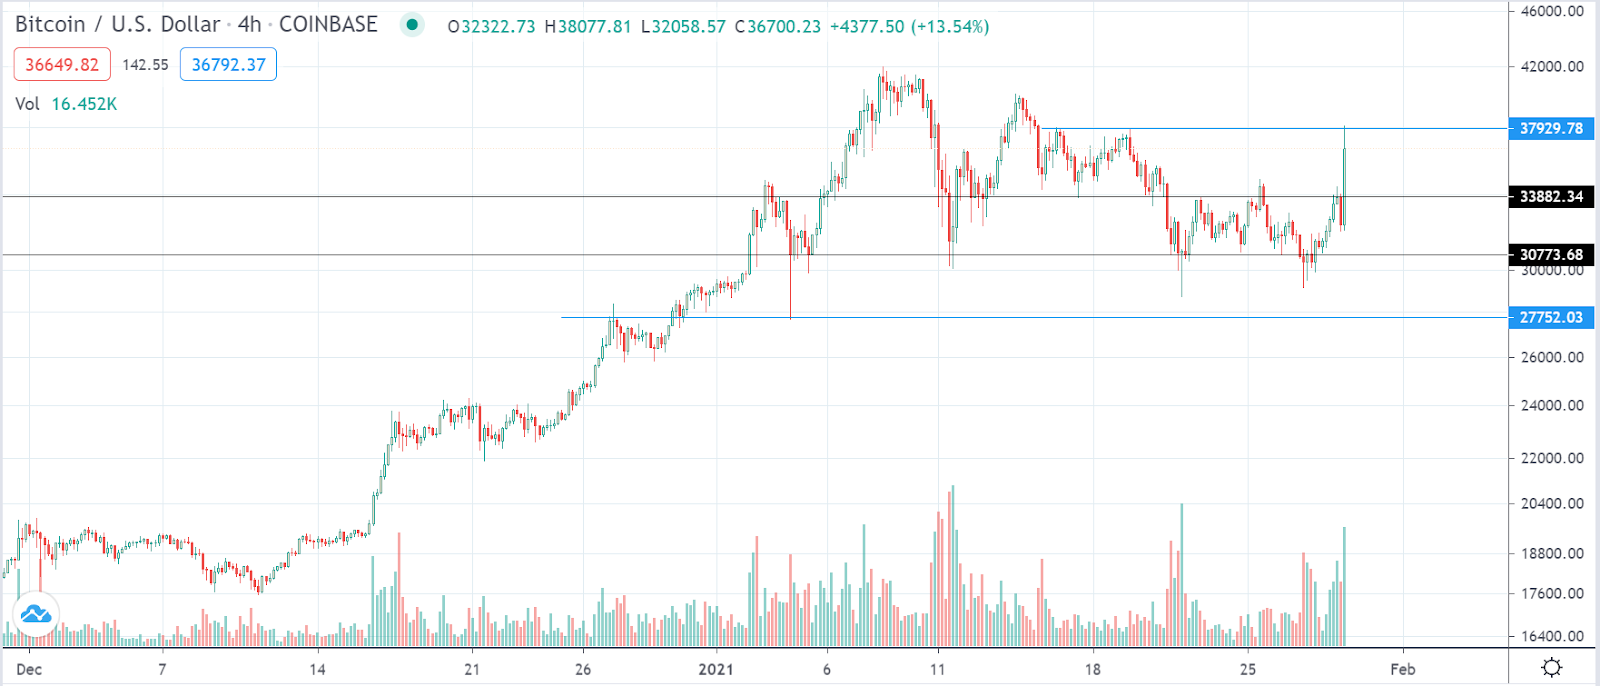 BTC/USD 4-hour chart on Coinbase. Source: Trading View